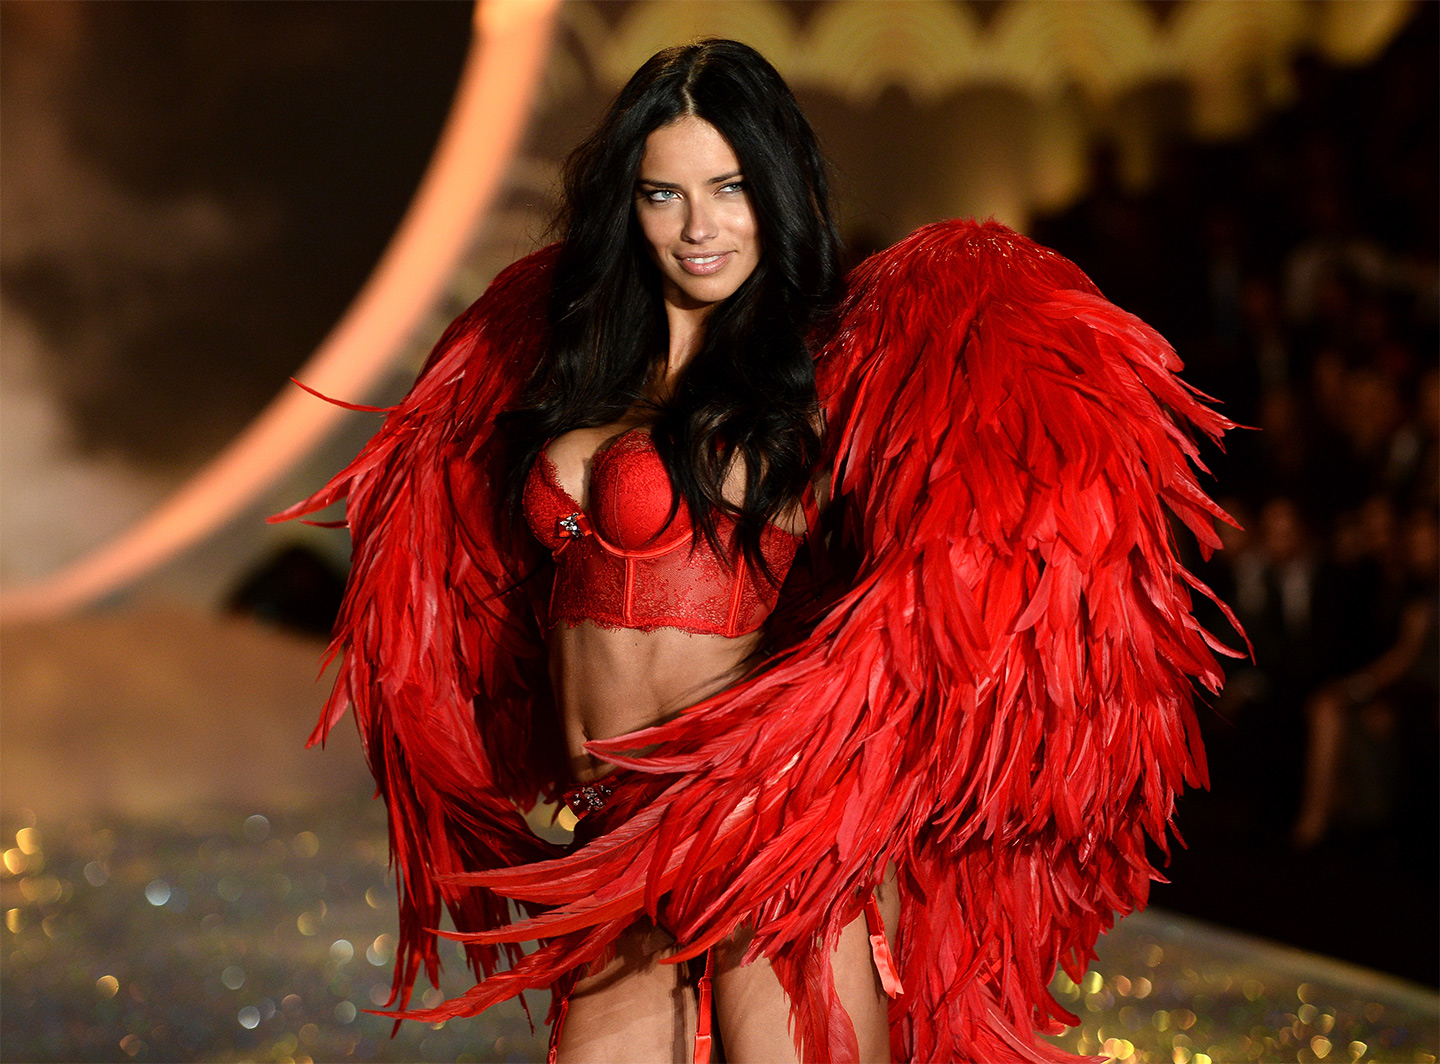 Model Adriana Lima: 'I Will Not Take My Clothes Off Anymore'